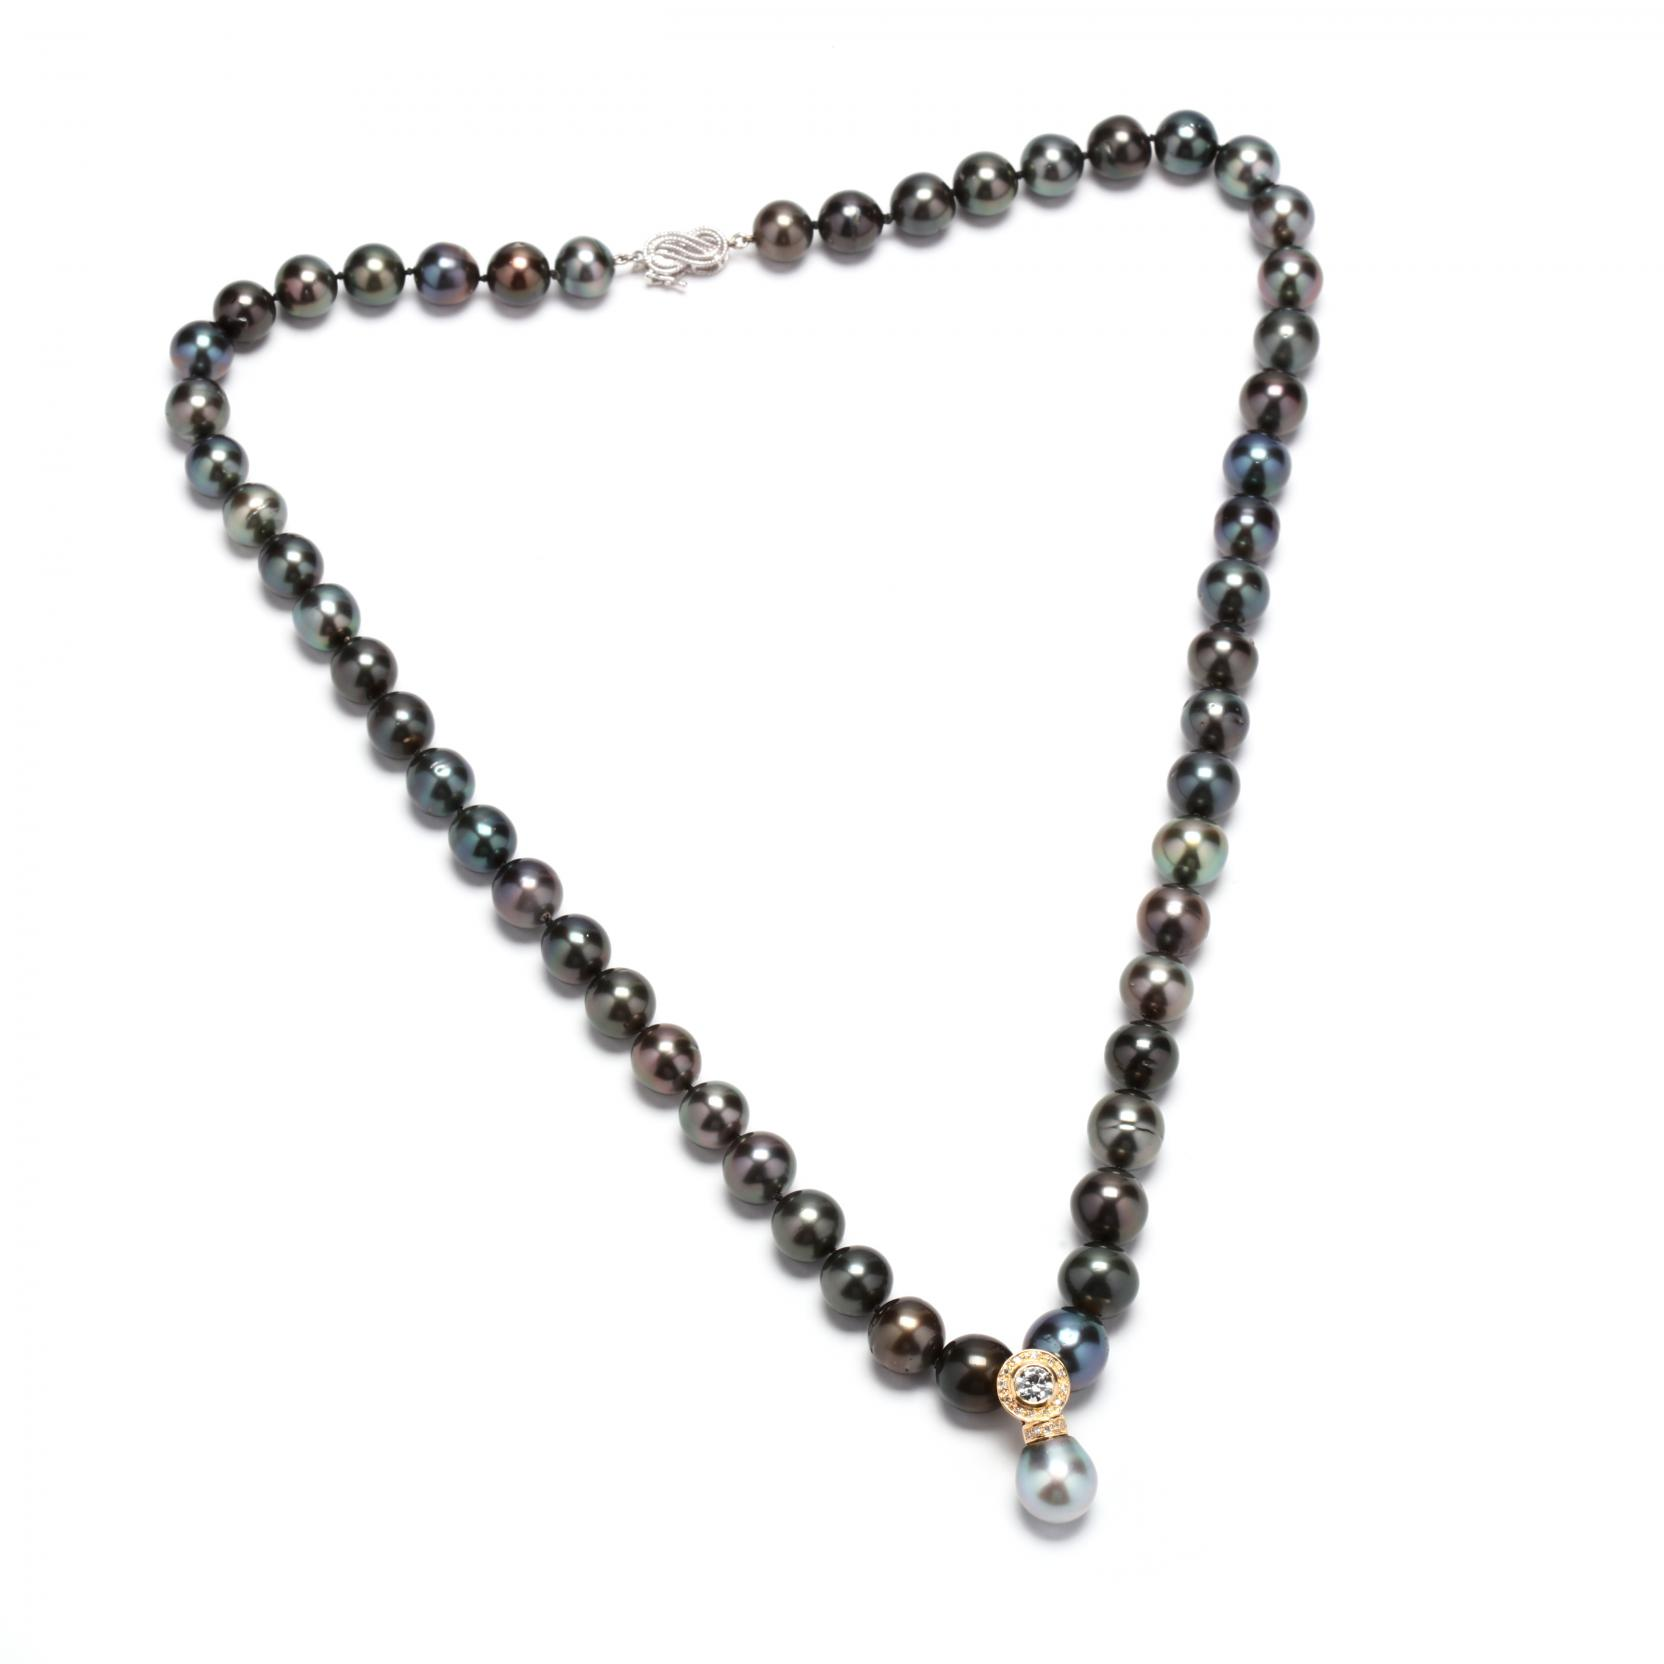 tahitian-pearl-necklace-with-diamond-set-enhancer